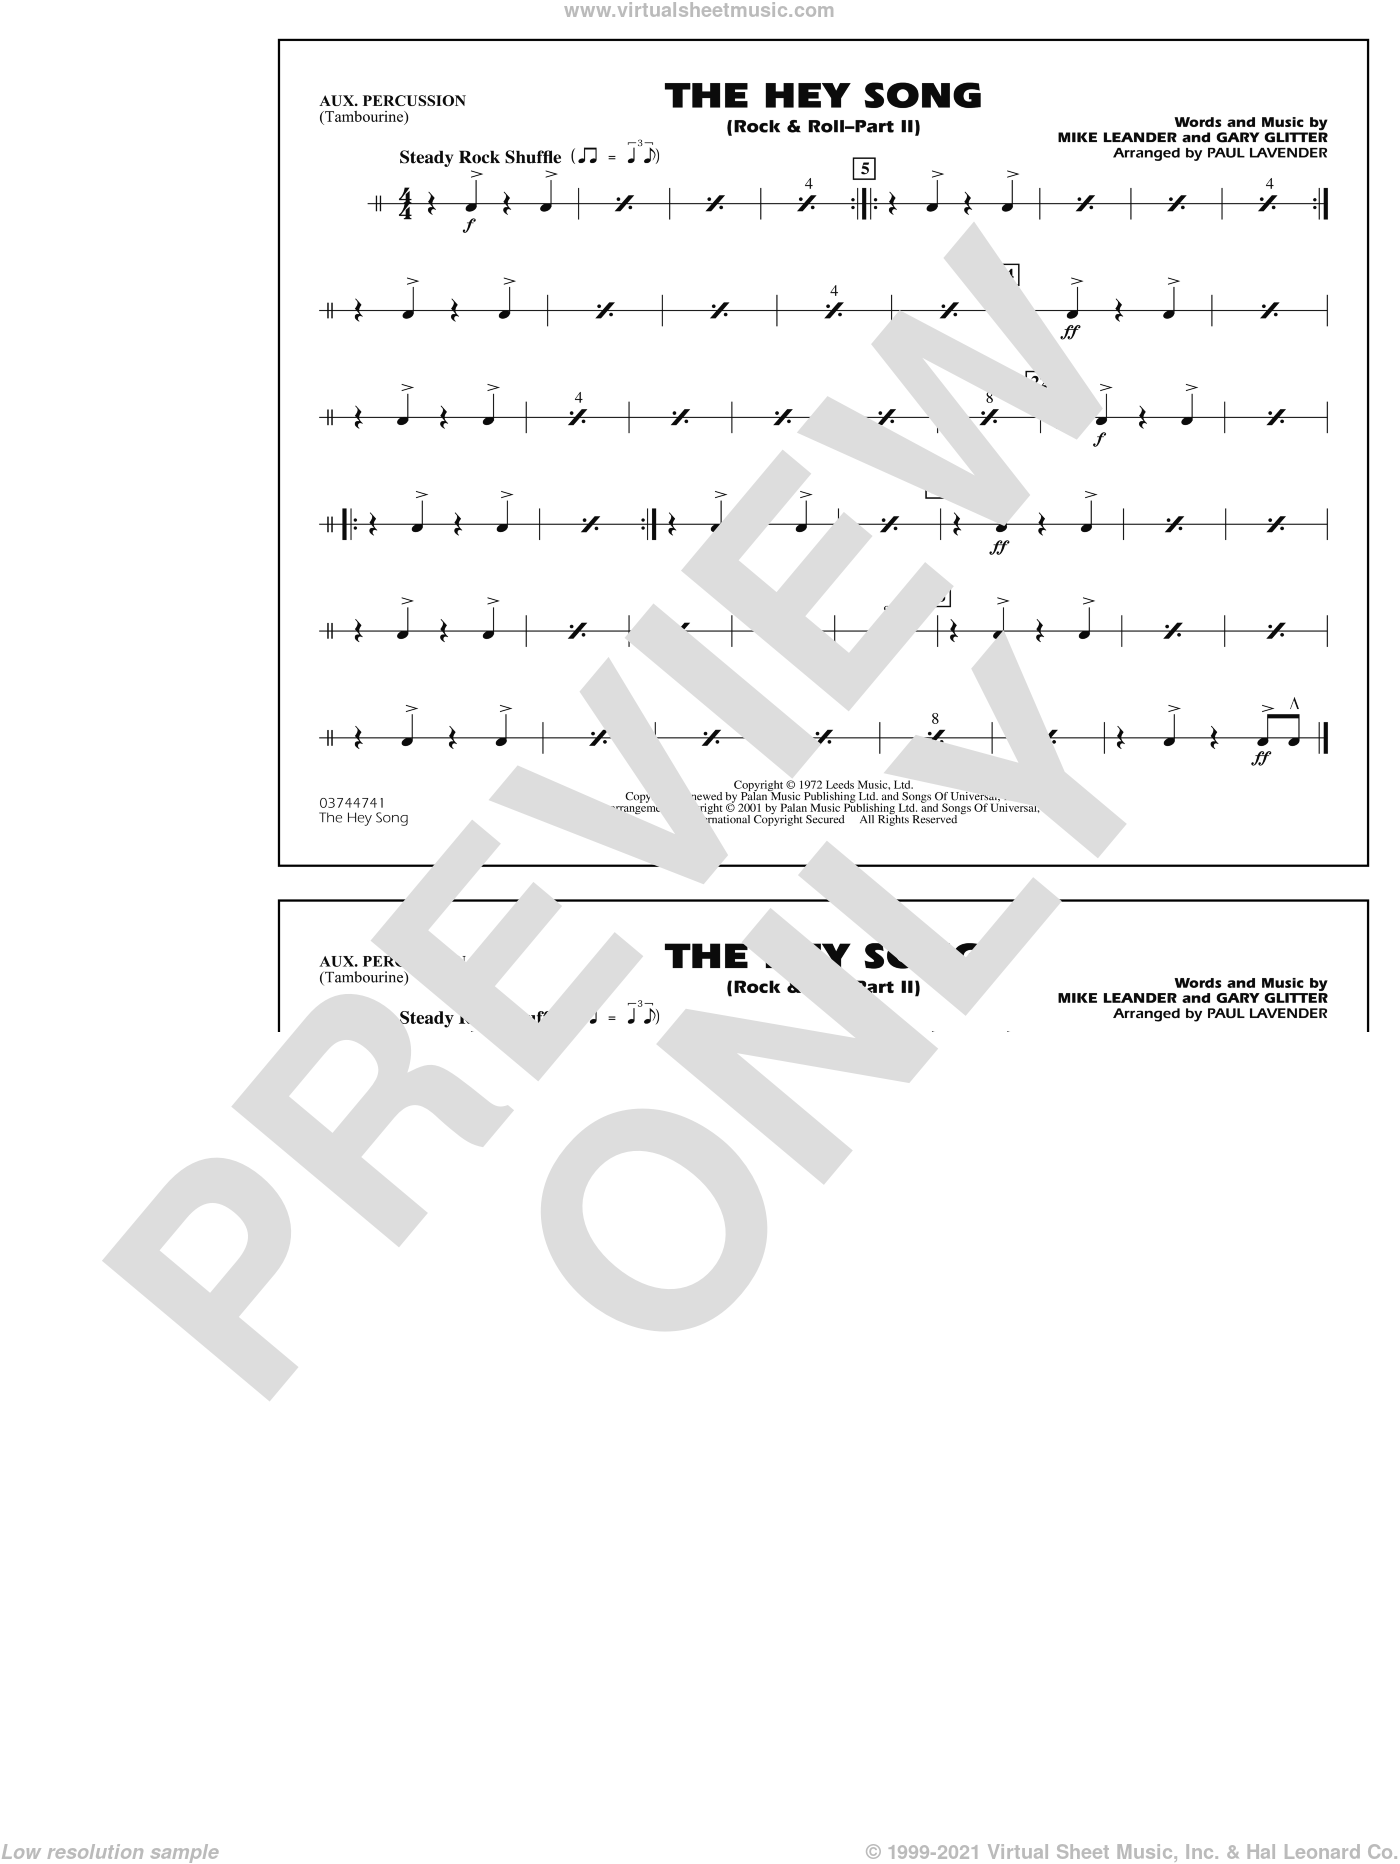 Rock and Roll, part ii (the hey song) sheet music for marching band (aux percussion) by Mike Leander